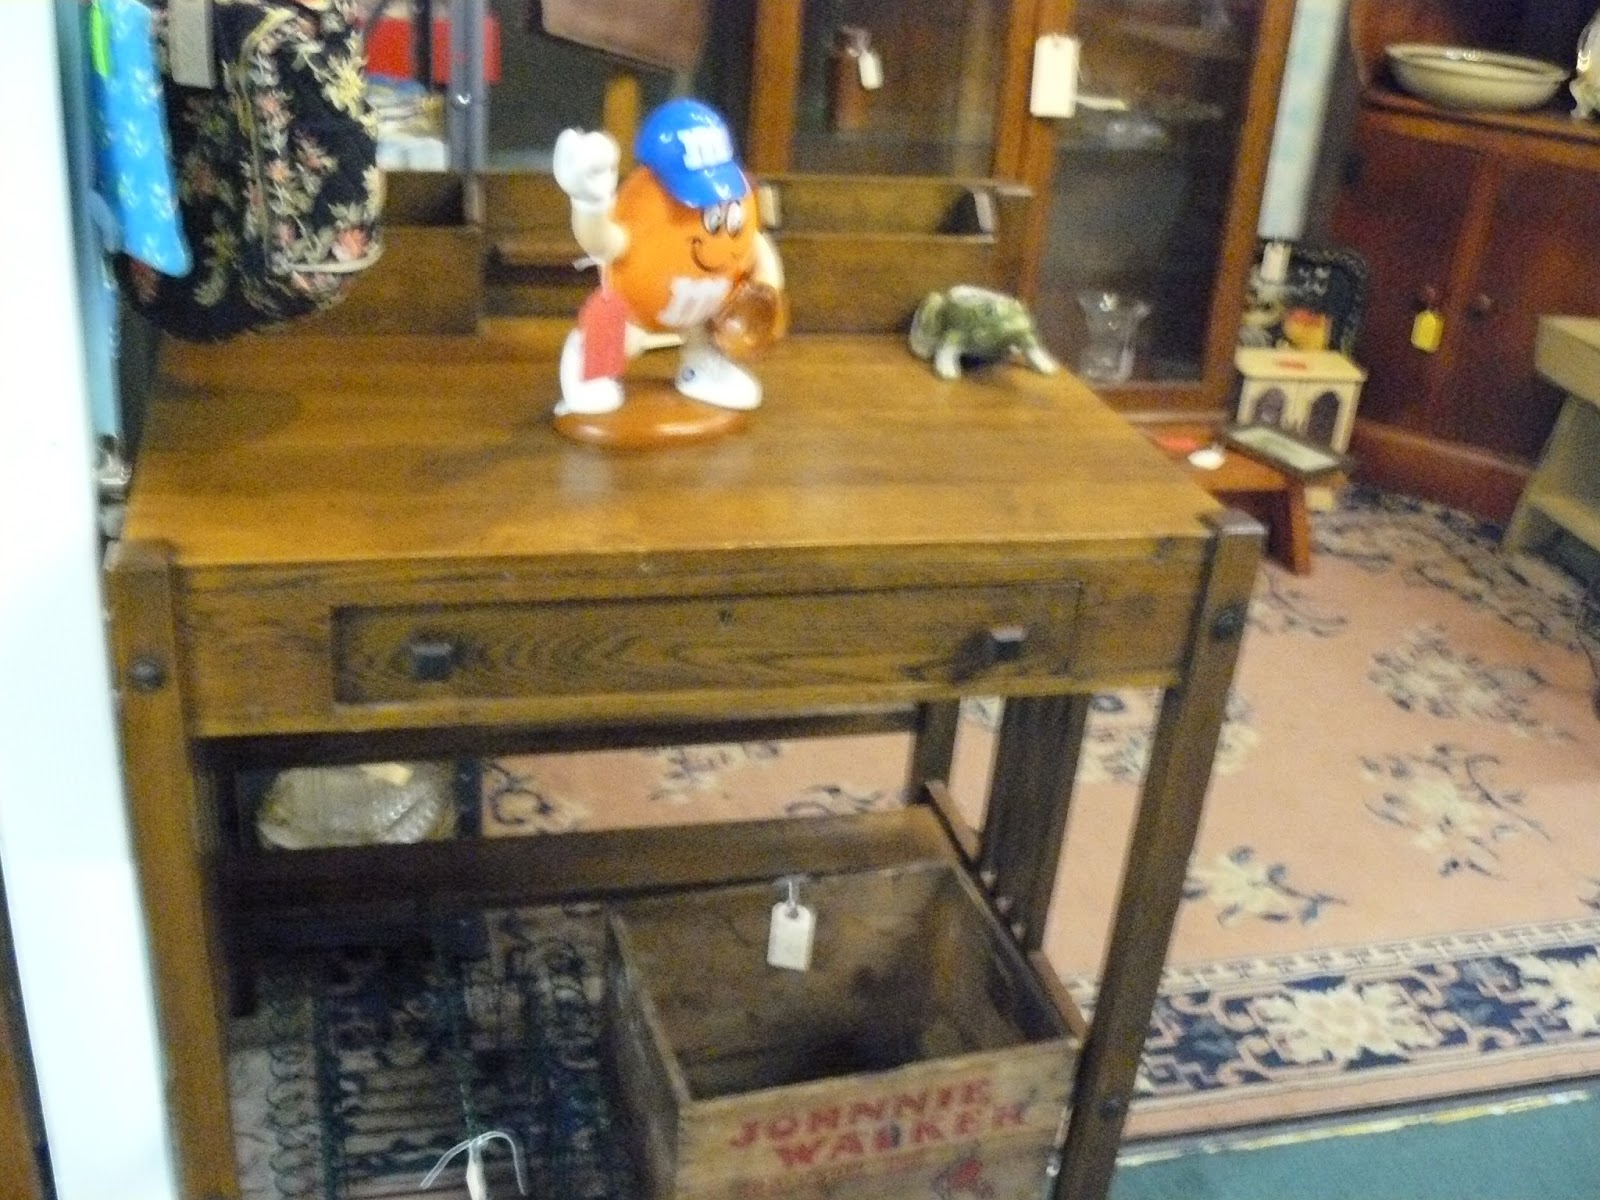 Scranberry coop scranberry coop antique and vintage store lots of collectibles decor